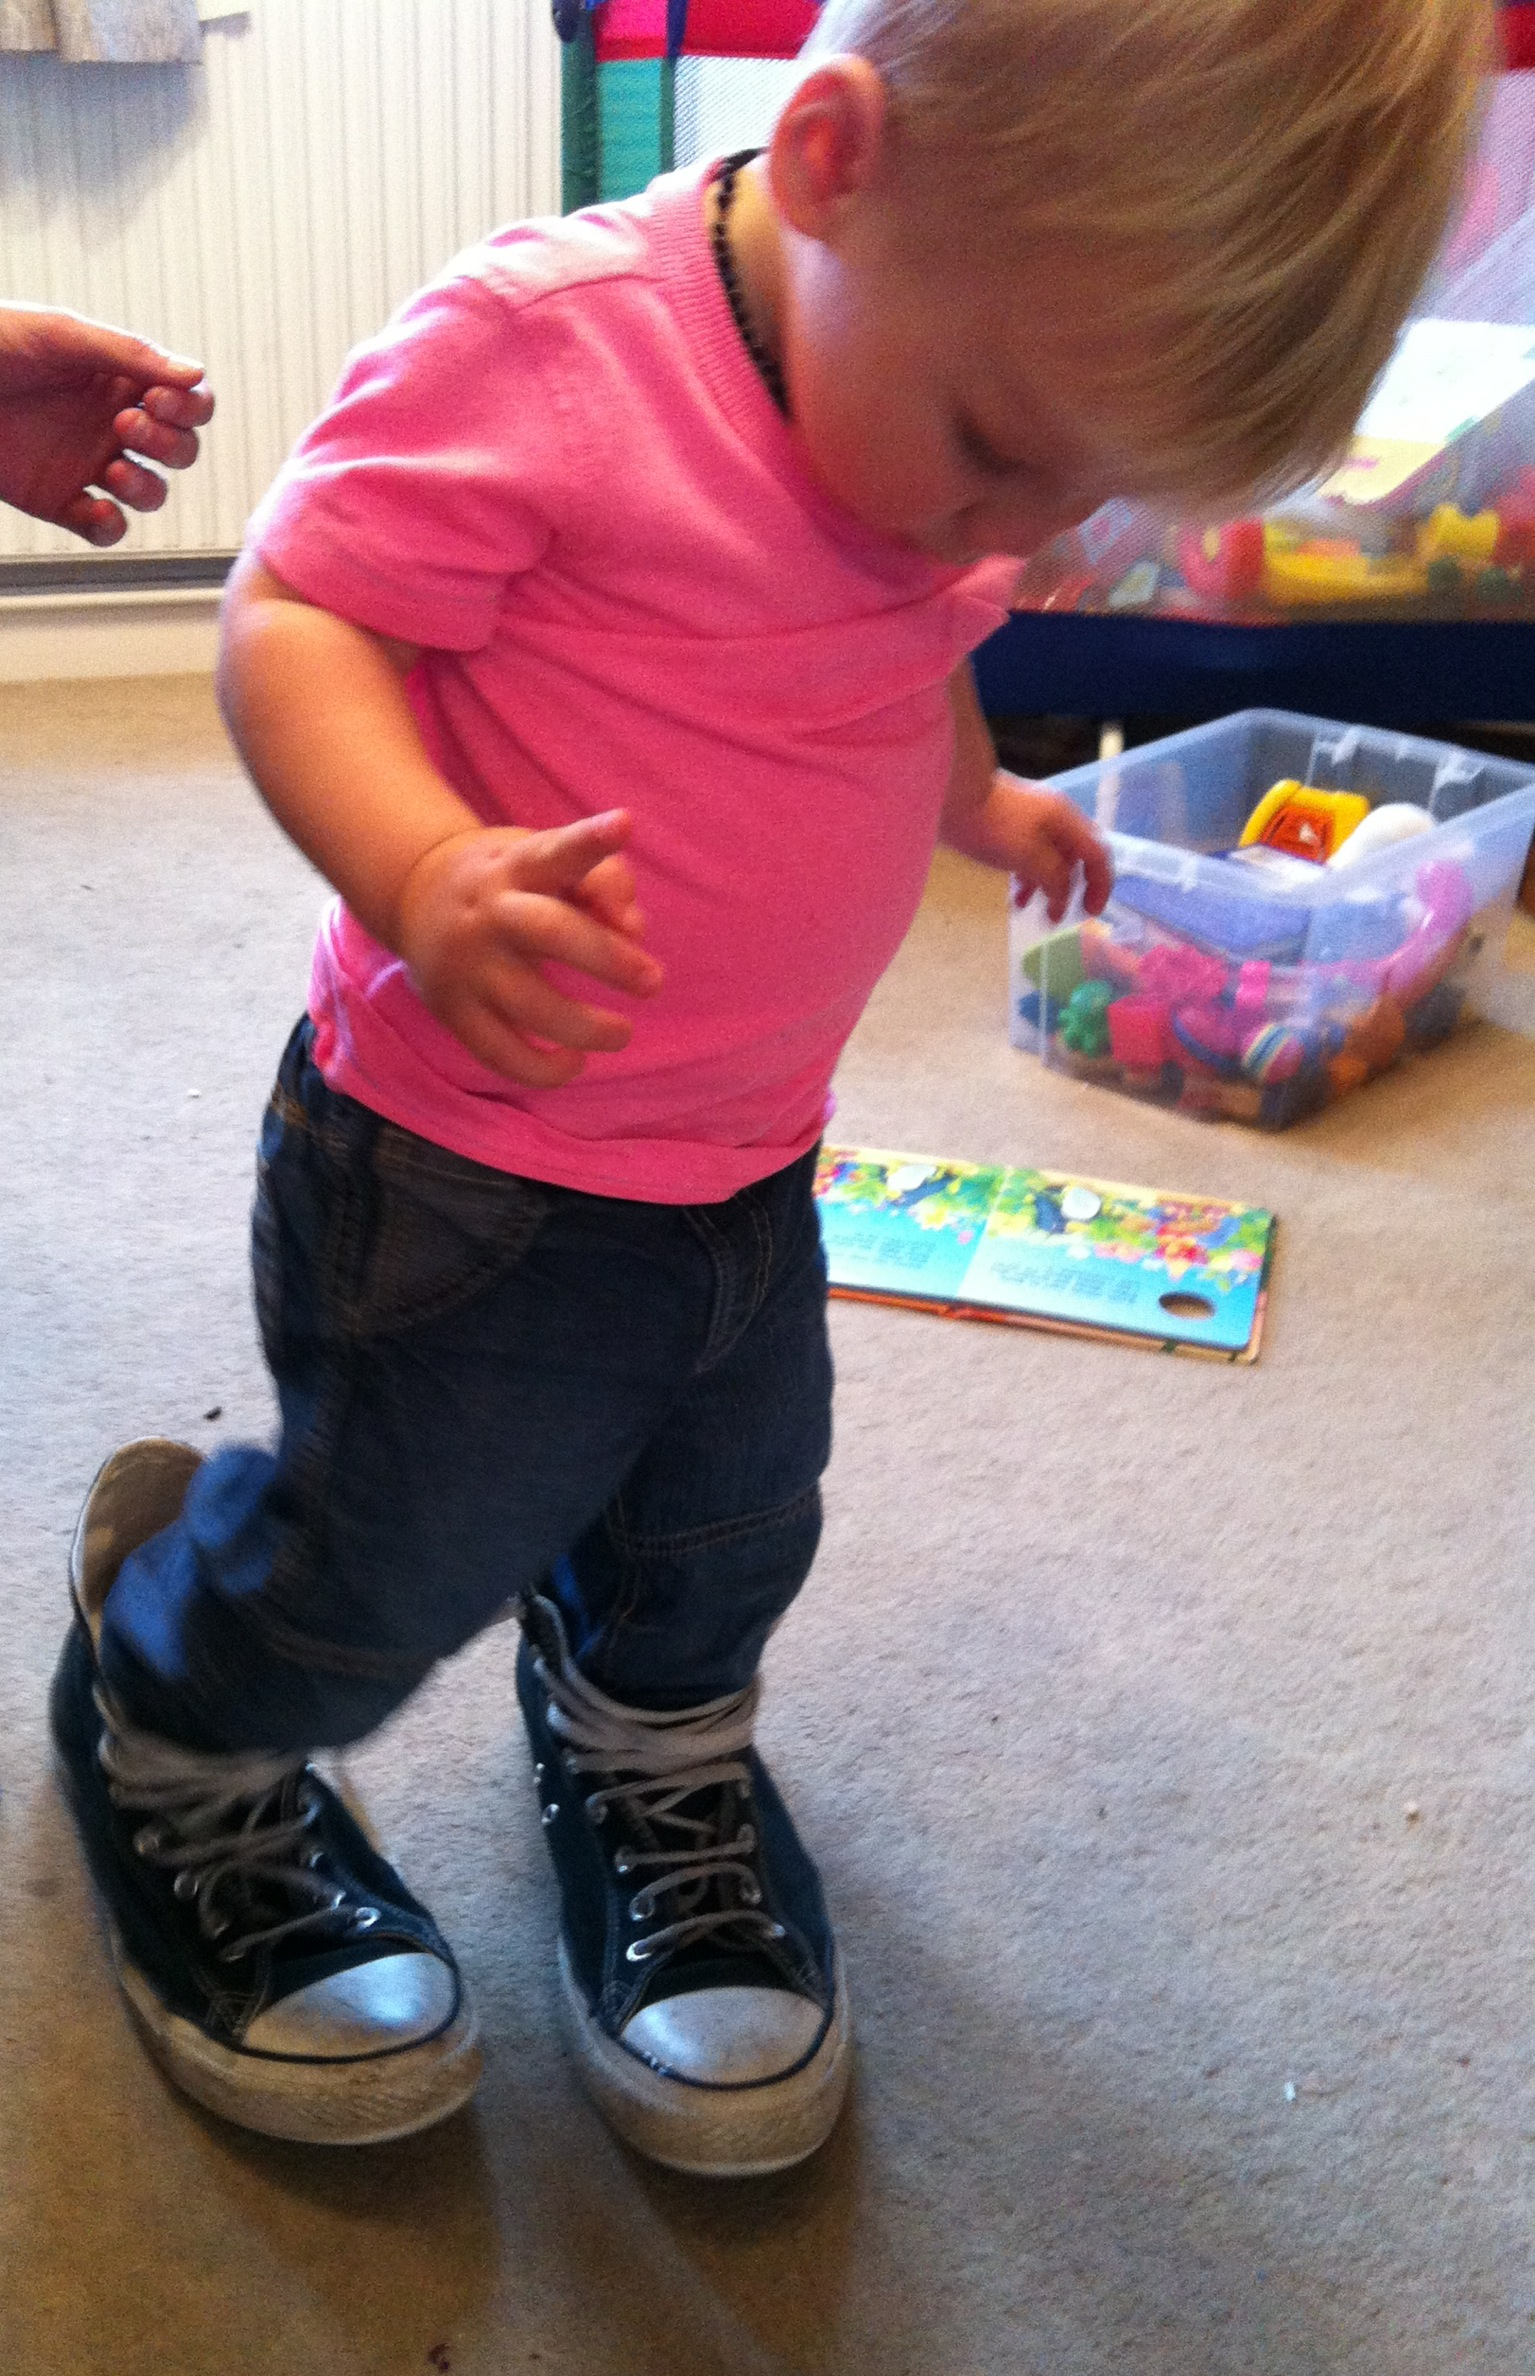 And what baby doesn't look super cute trying their daddy's shoes on?